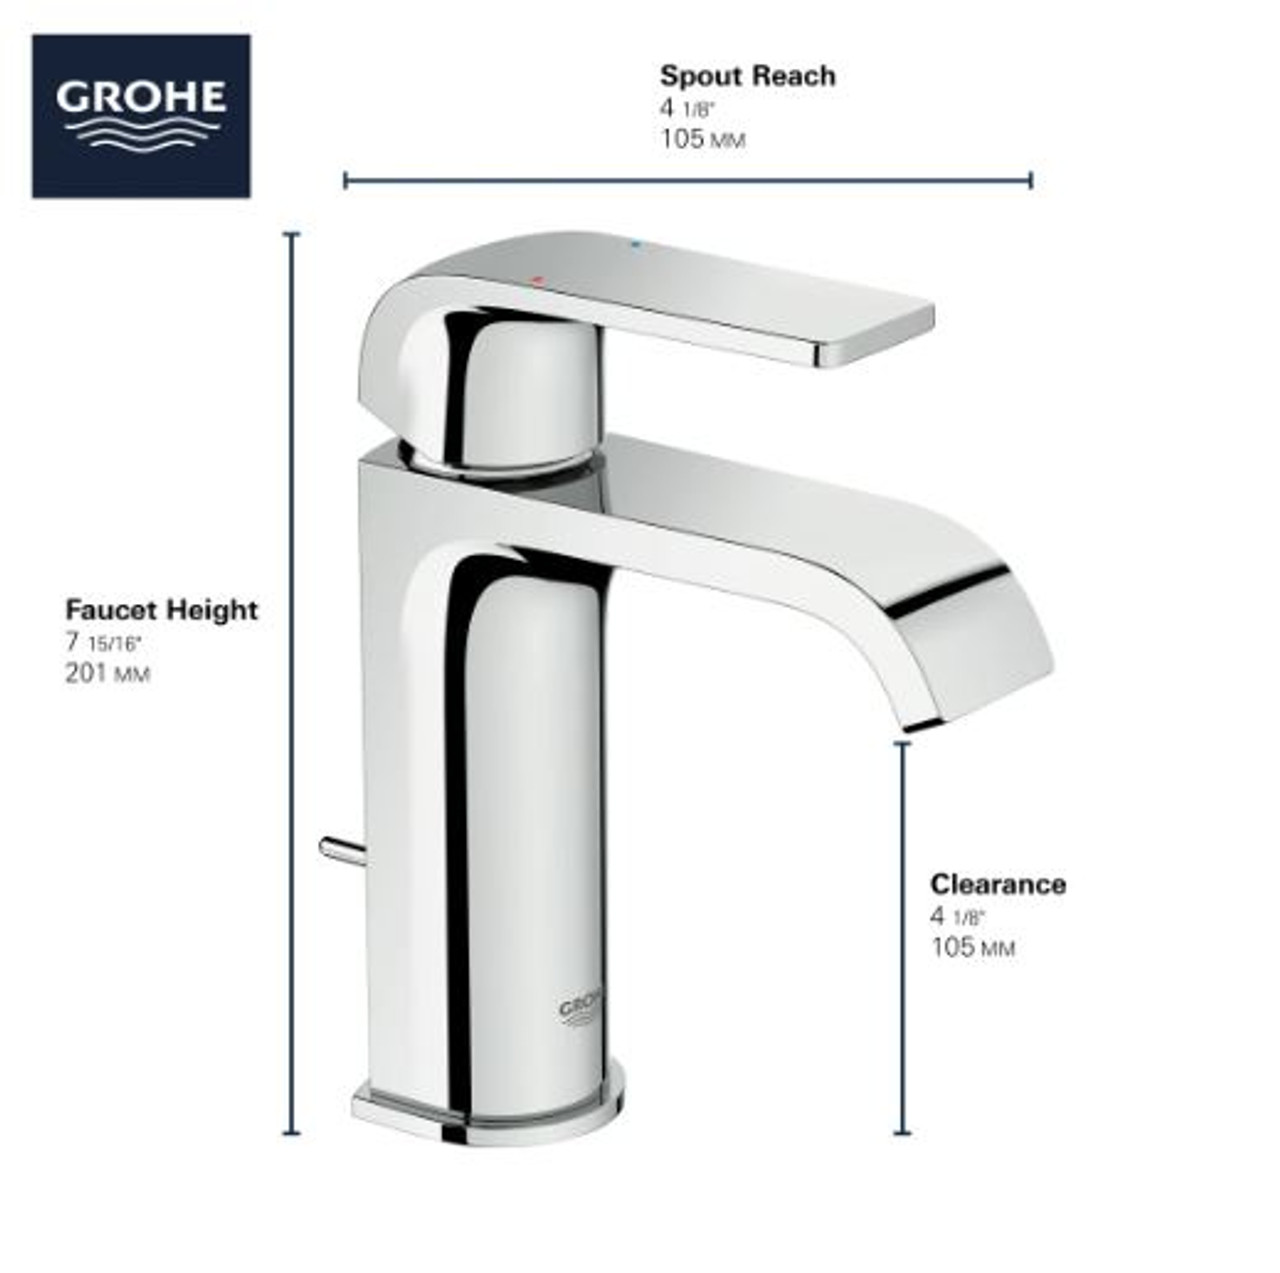 grohe defined 1 2 gpm single hole bathroom faucet with pop up drain assembly silkmove and ecojoy technologies